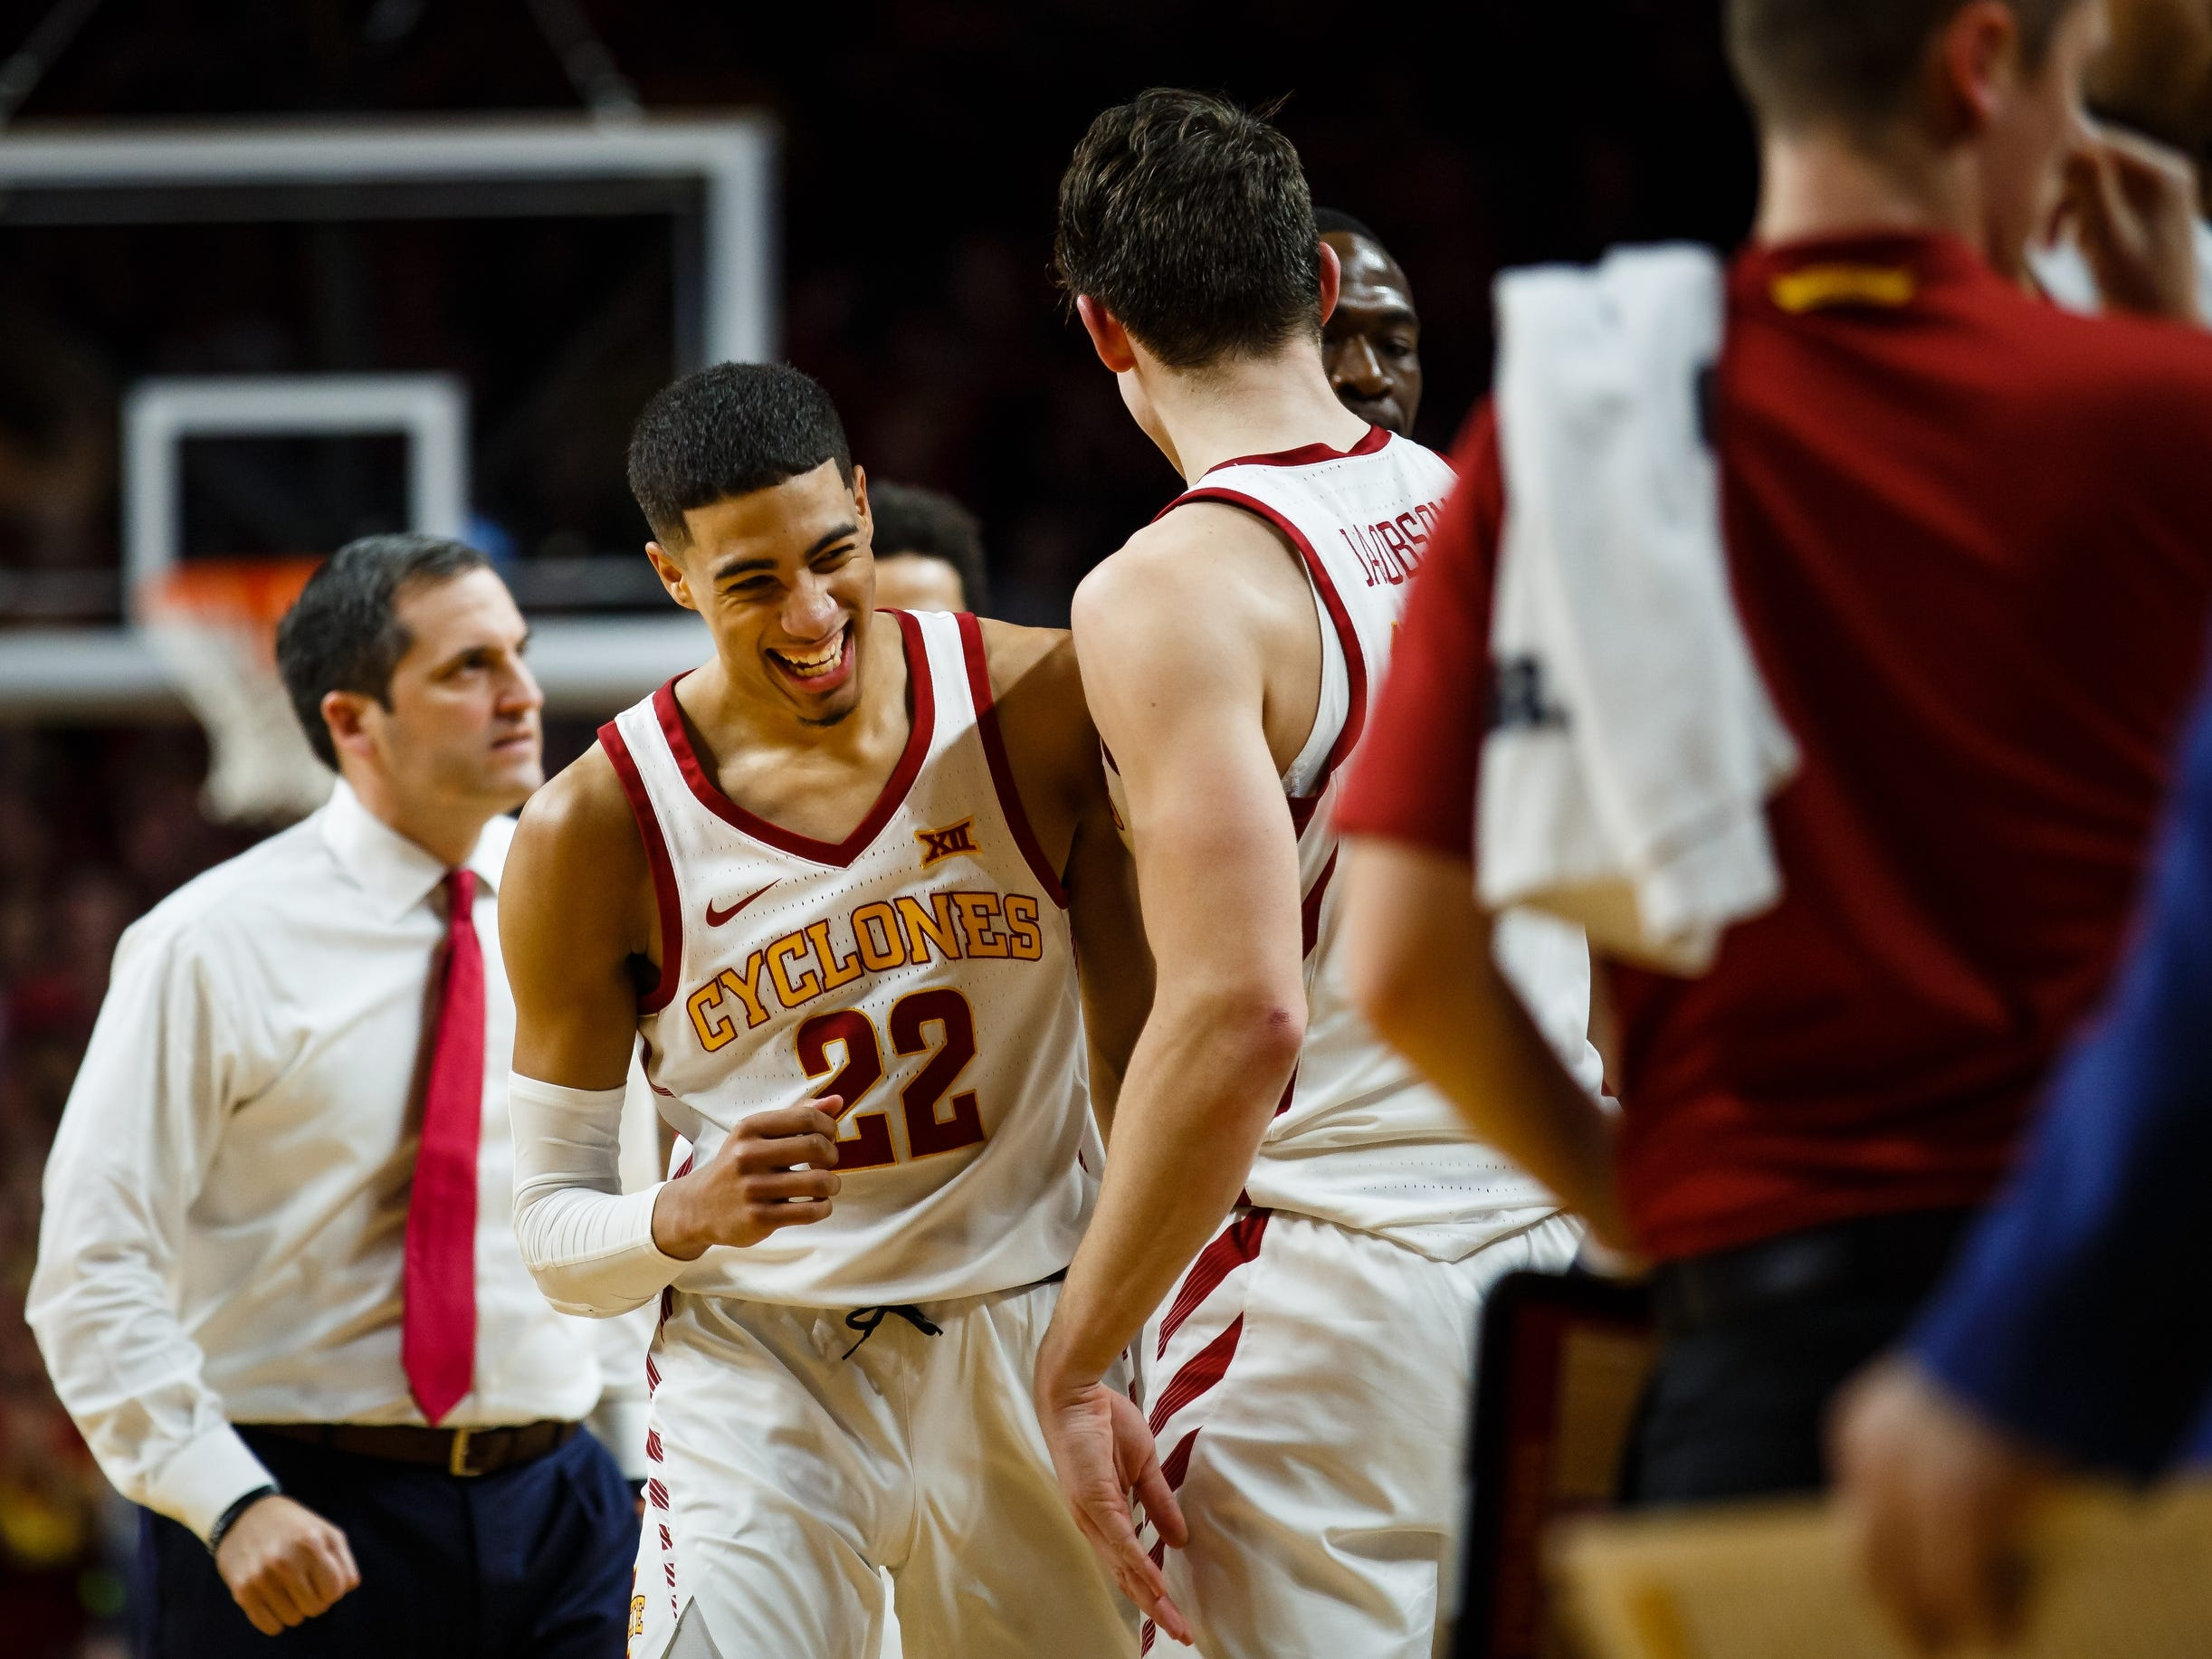 Iowa State's Tyrese Haliburton (22) is congratulated as he returned to the bench during the second half of their basketball game on Saturday, Jan. 5, 2019, in Ames. Iowa State would go on to beat Kansas 77-60.